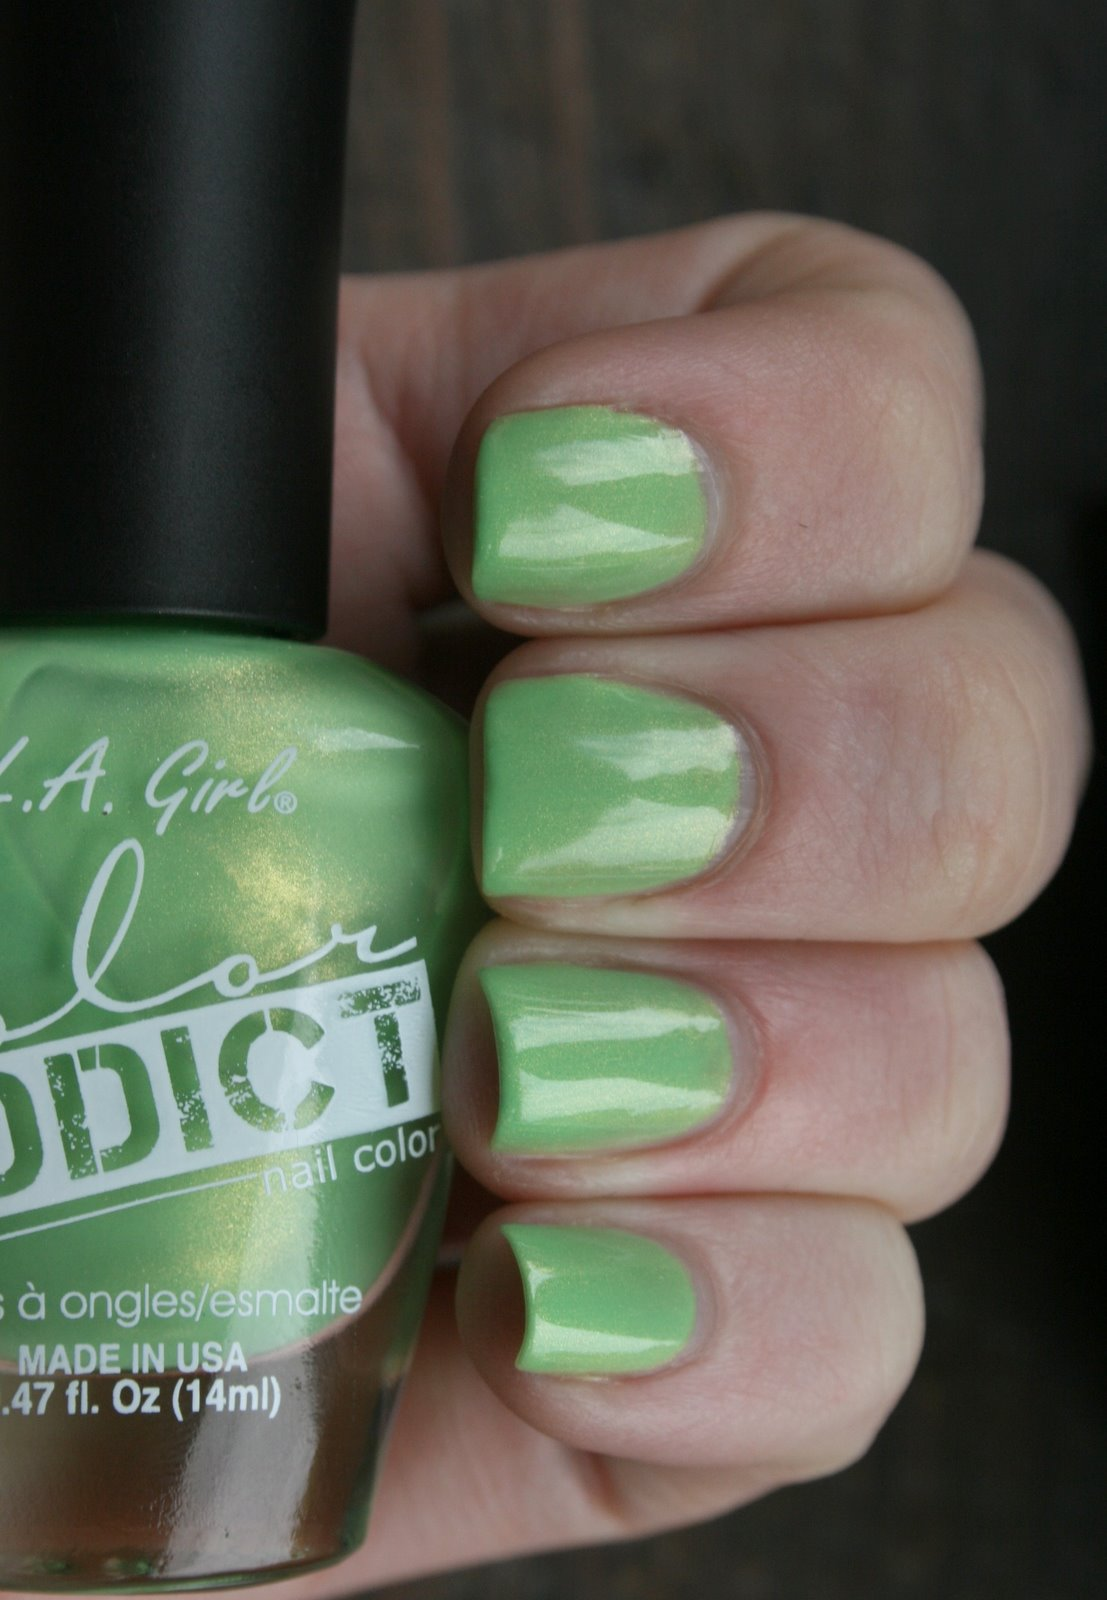 LA Girl Addict - Urge Swatch